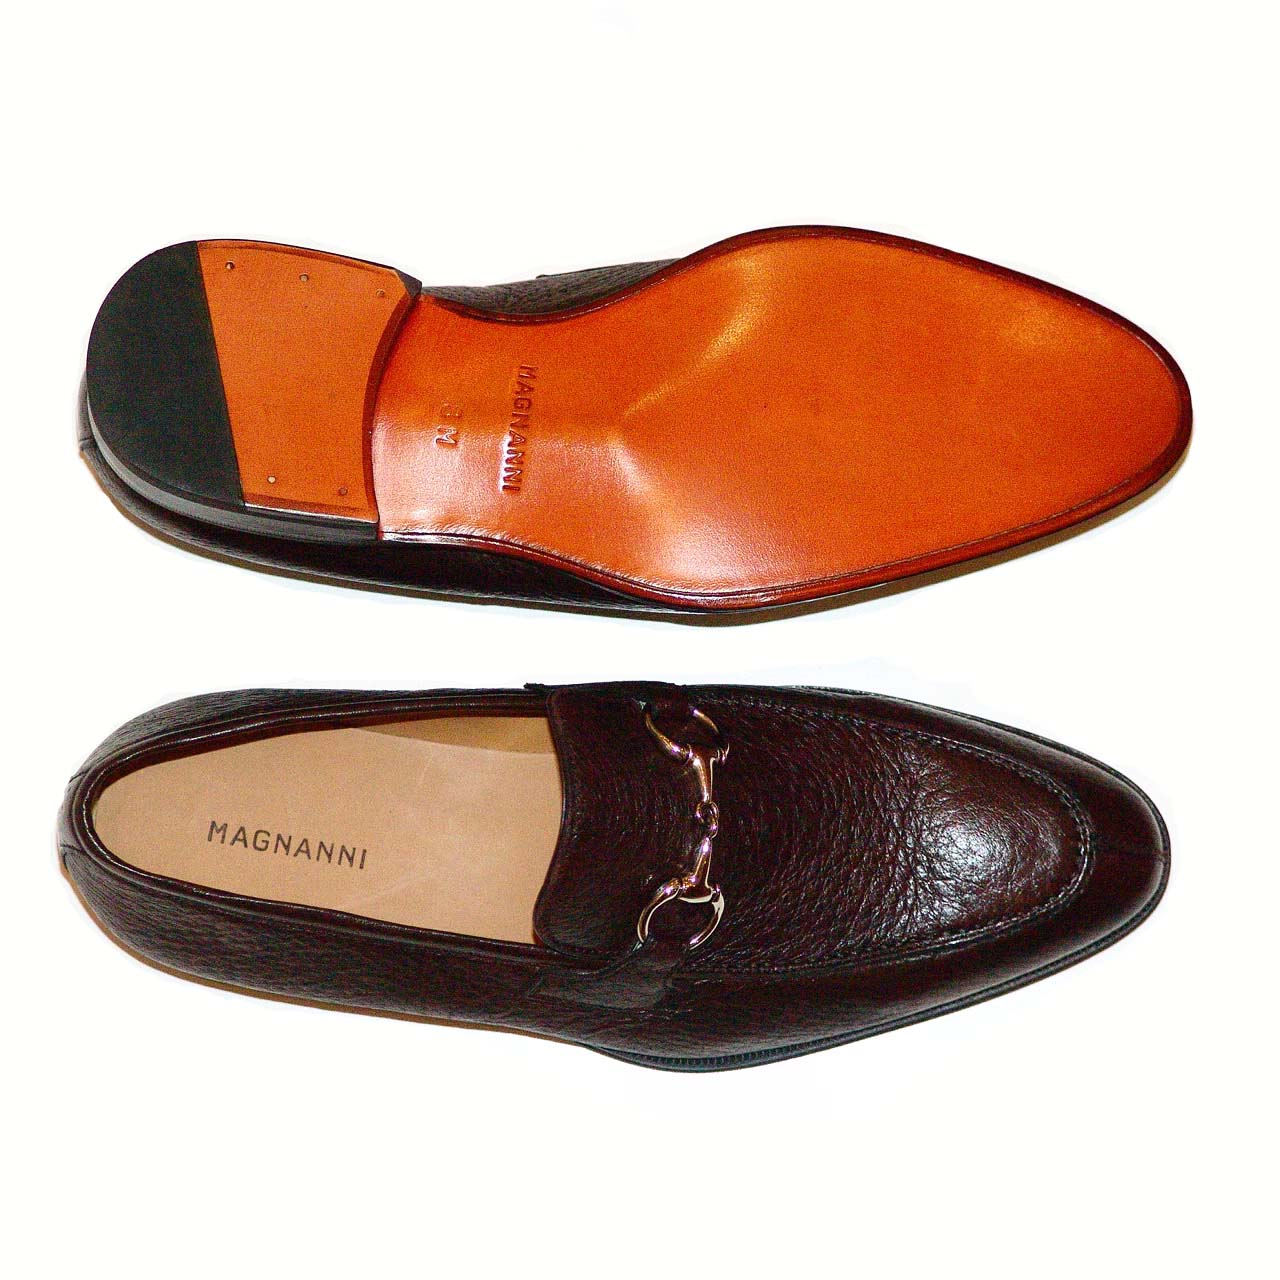 Magnanni 13908 Brown Full Peccary Leather Very Soft